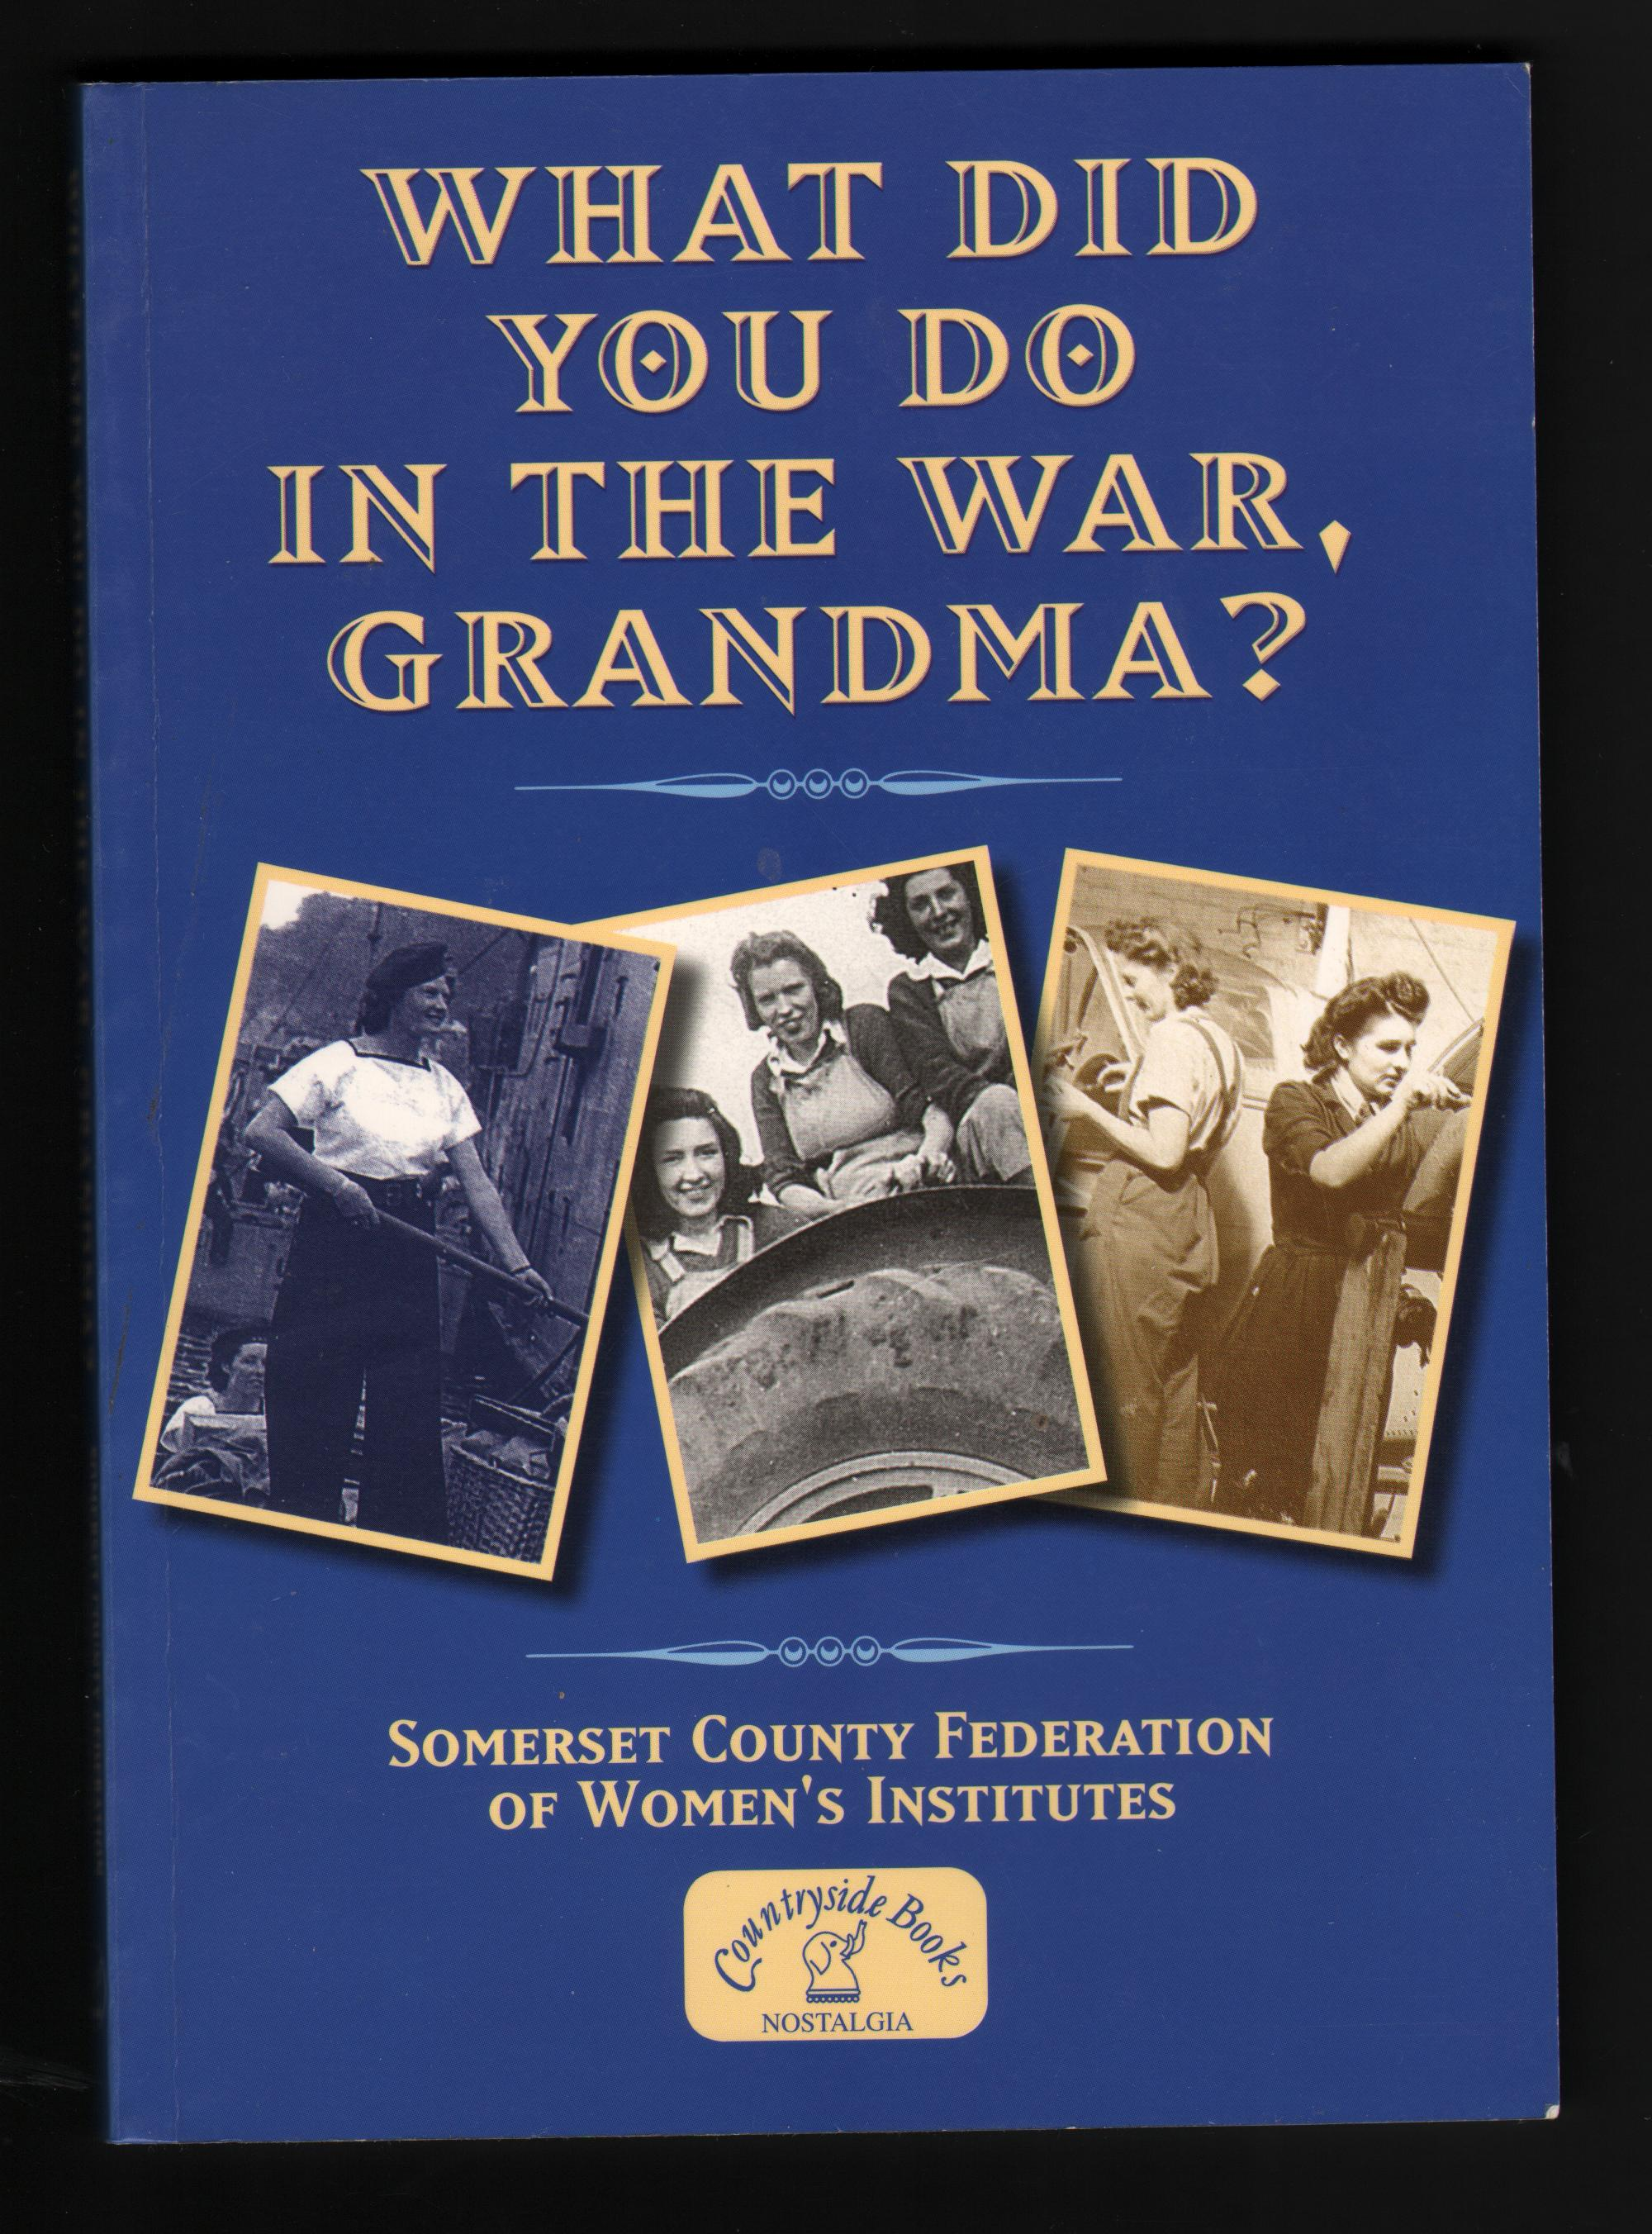 What did you do in the Great War, grandma?